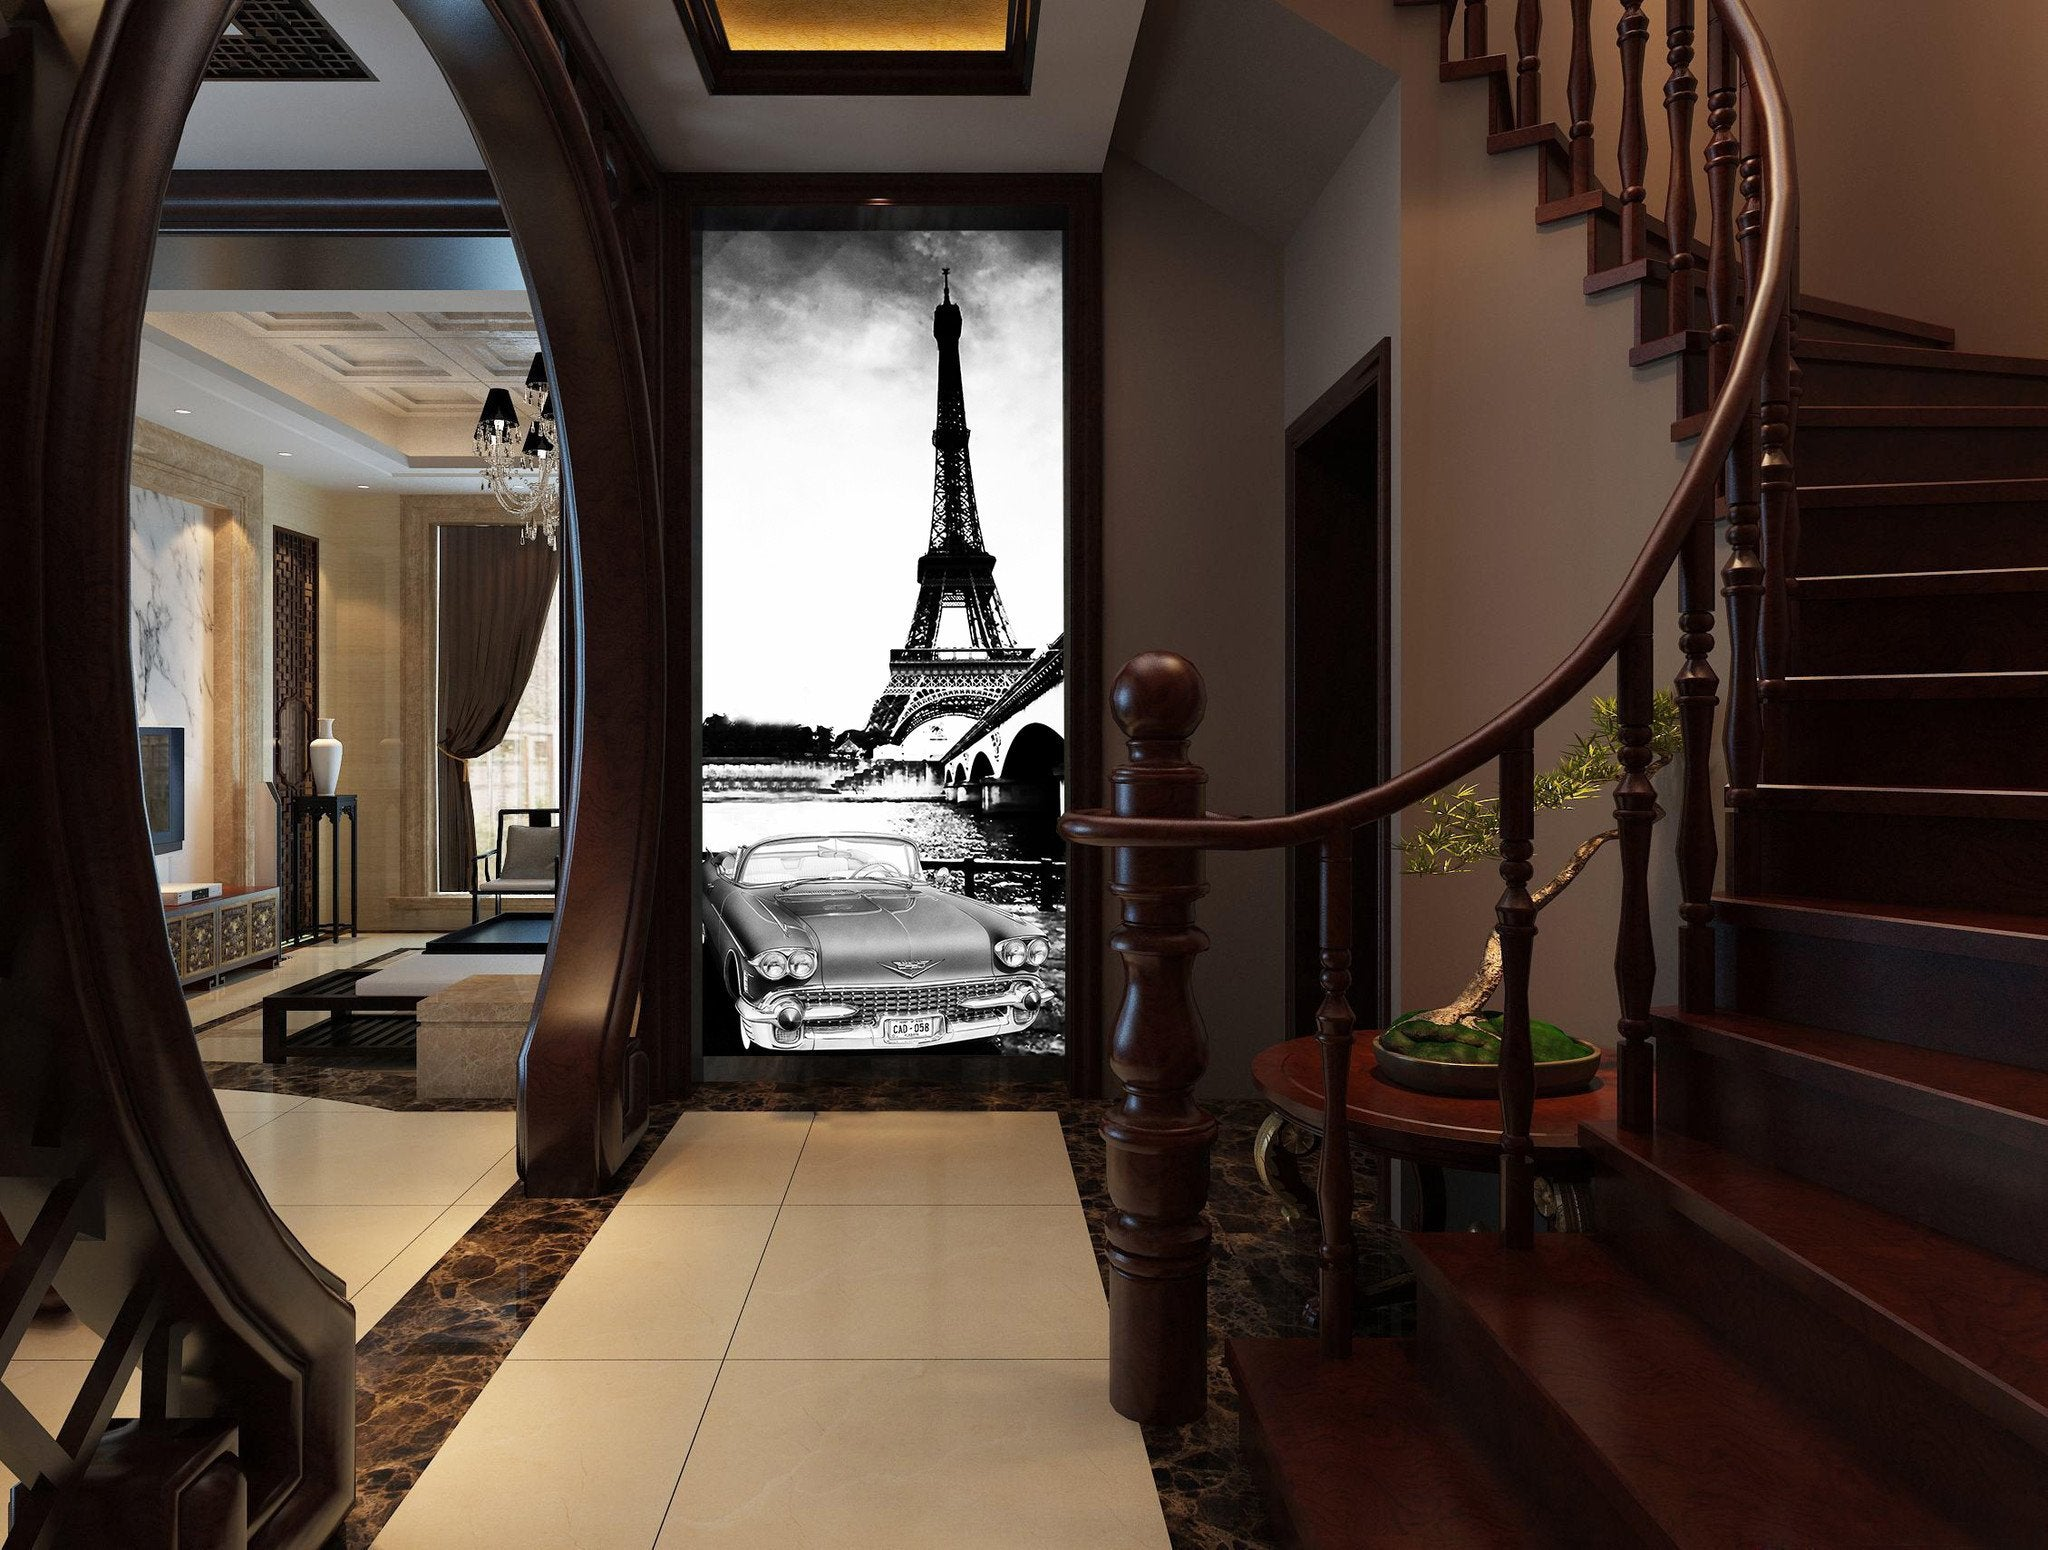 Eiffel Tower 21 Wallpaper AJ Wallpapers